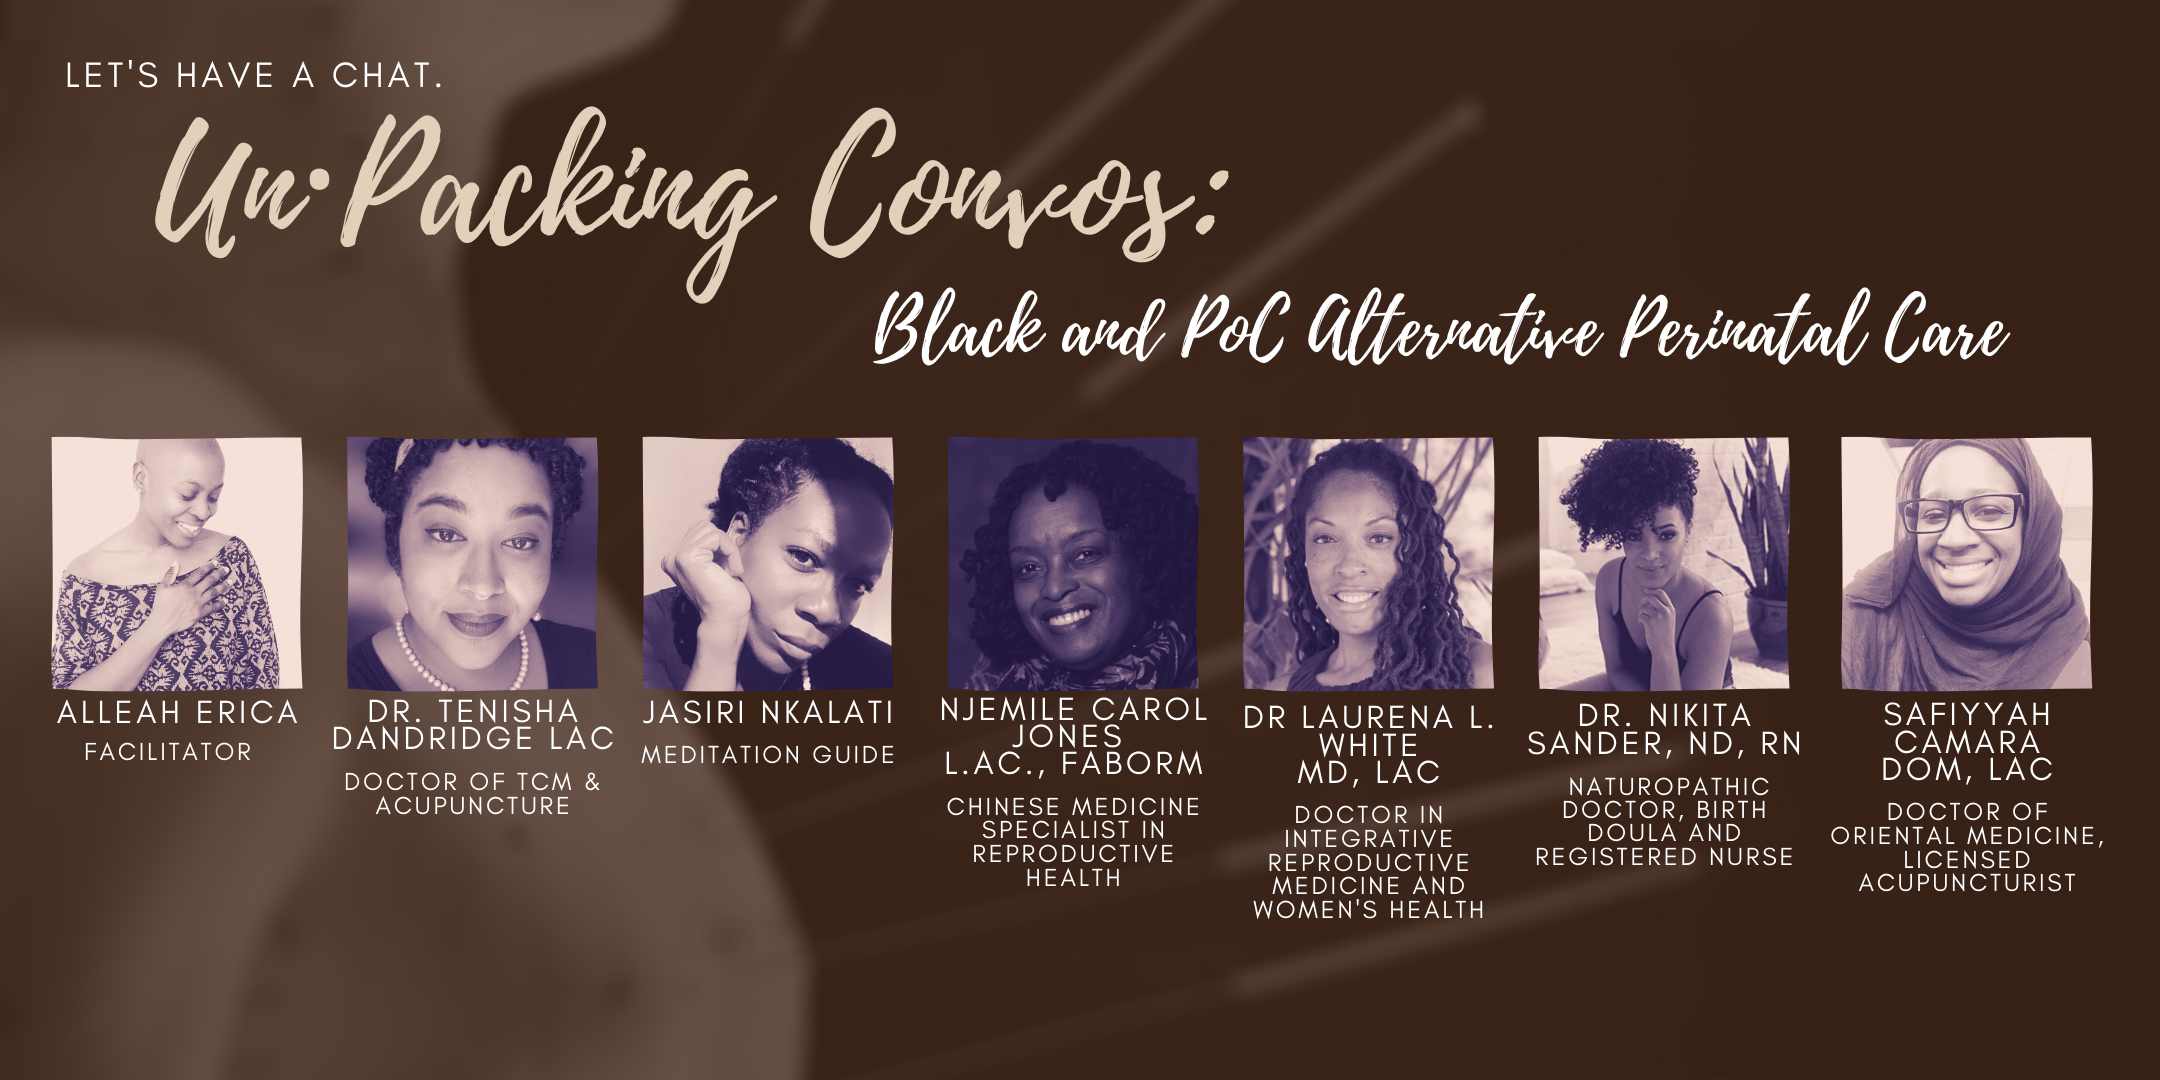 Headshot Pictures of the Panellists for Black and POC Alternative Perinatal Care for the un·Packing Convos Series